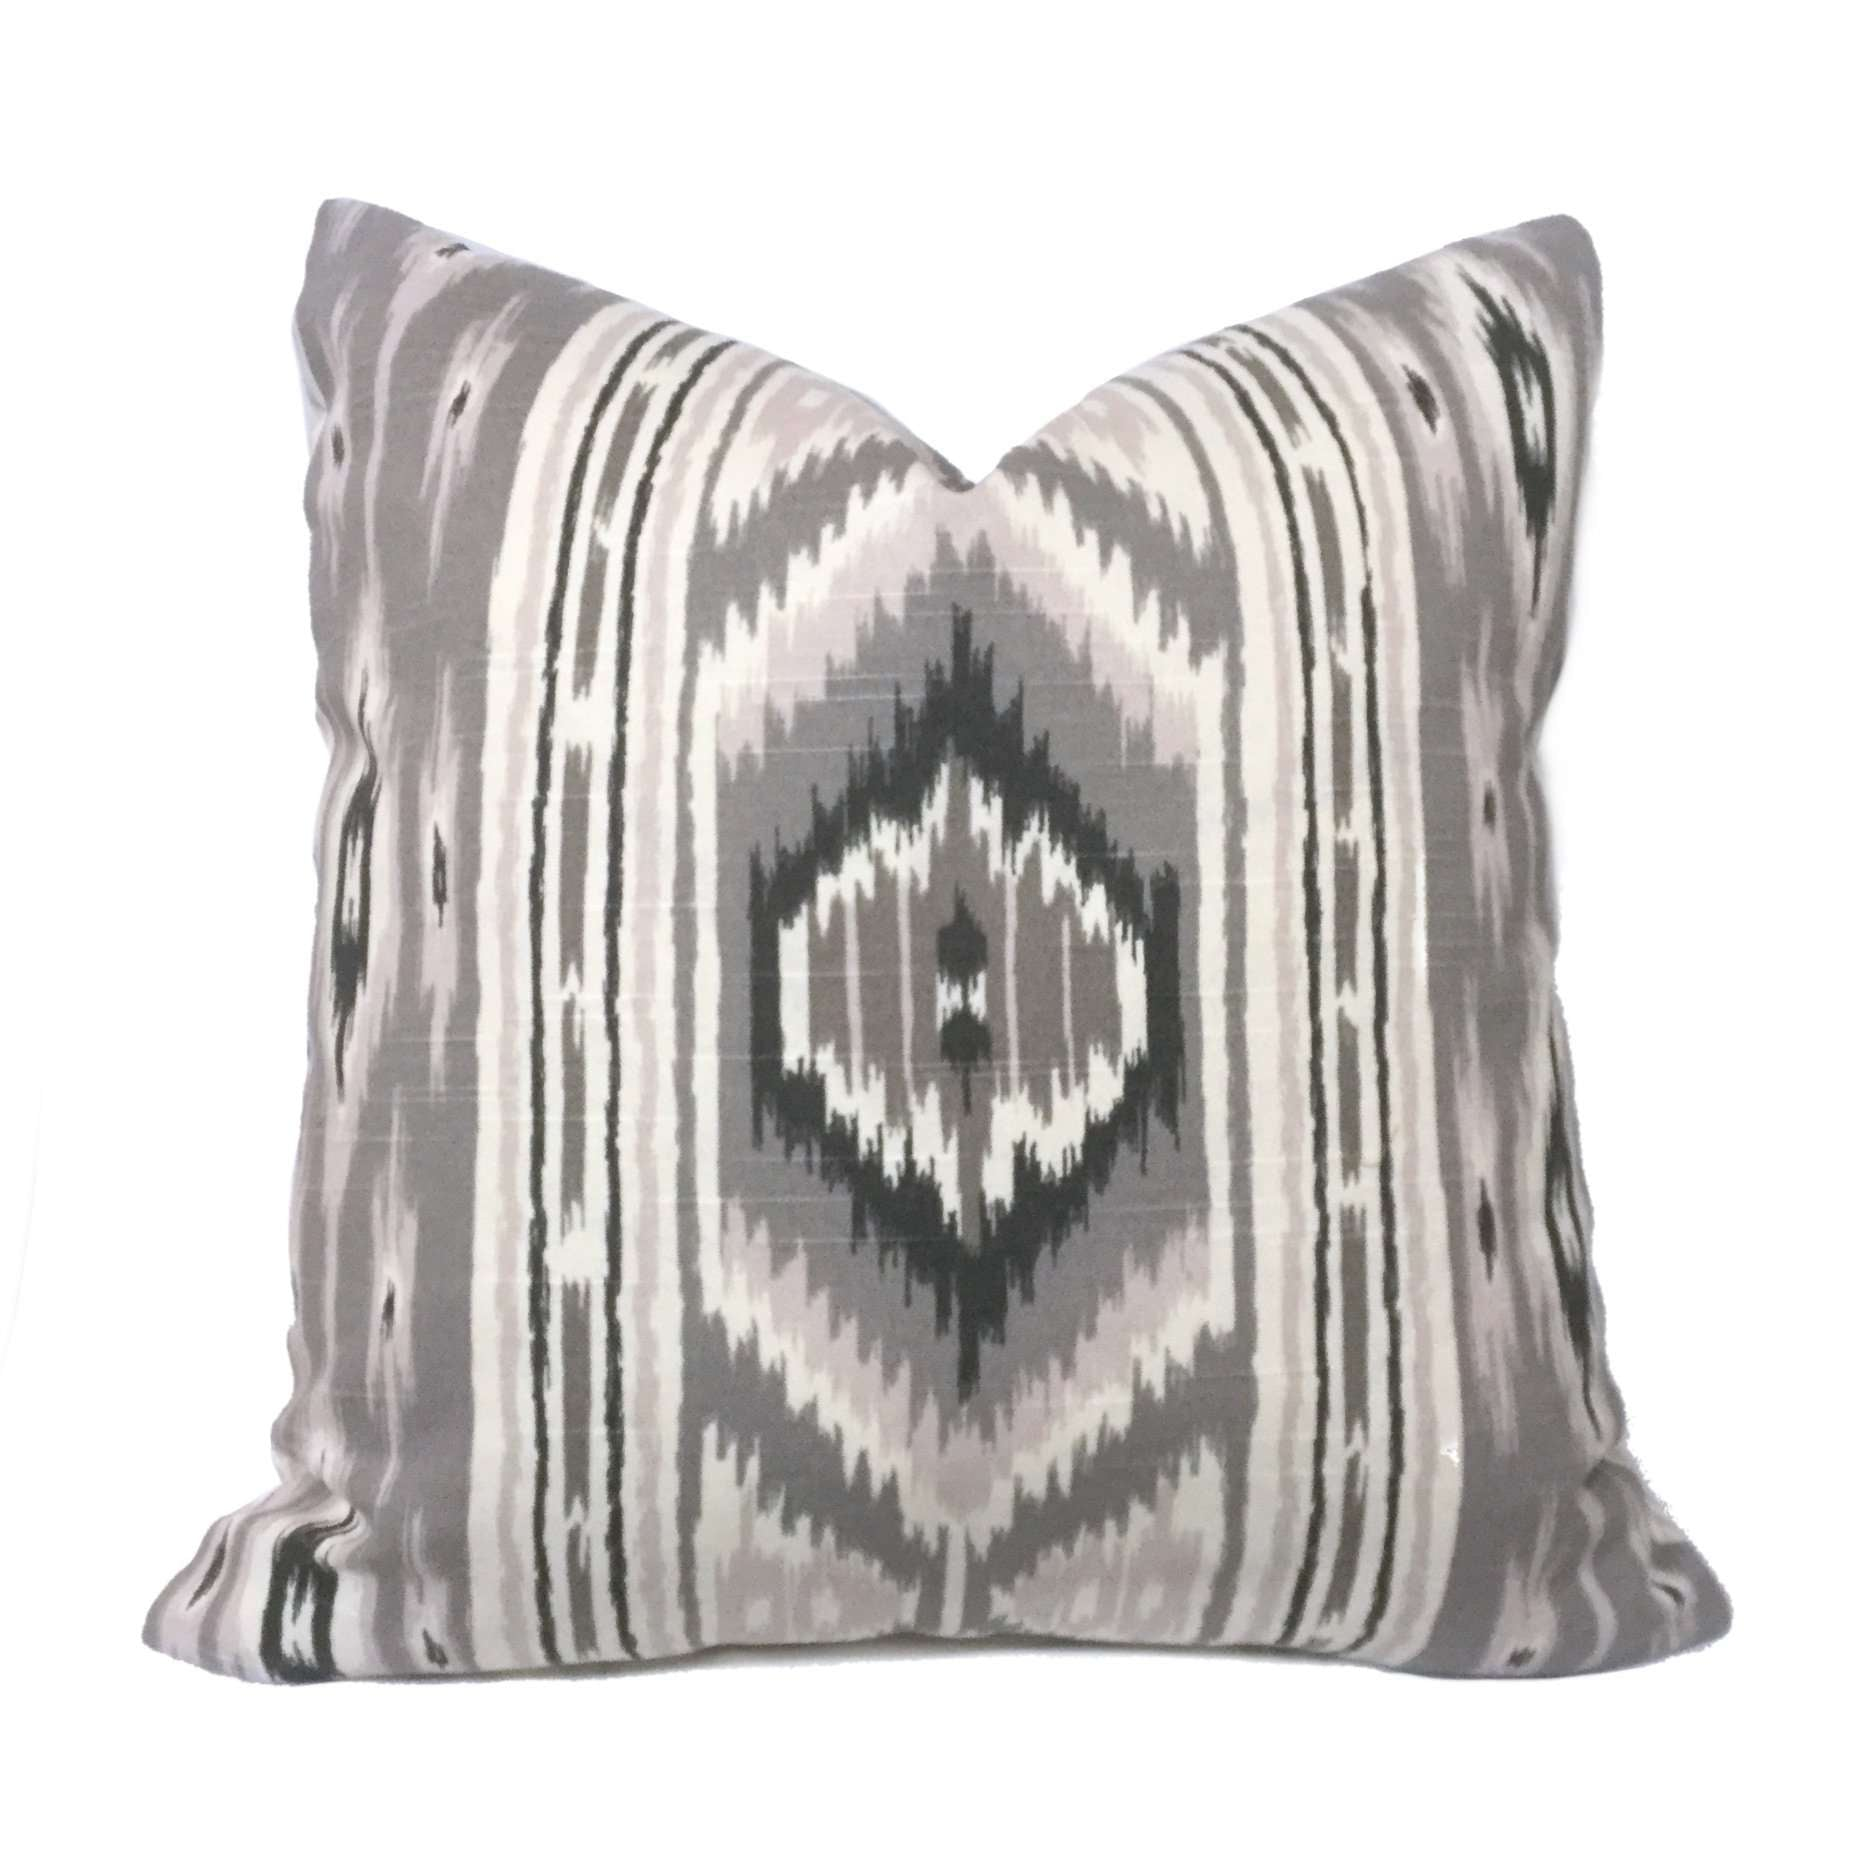 Nate Berkus Ethnic Tribal Gray Lilac Cotton Print Pillow Cover